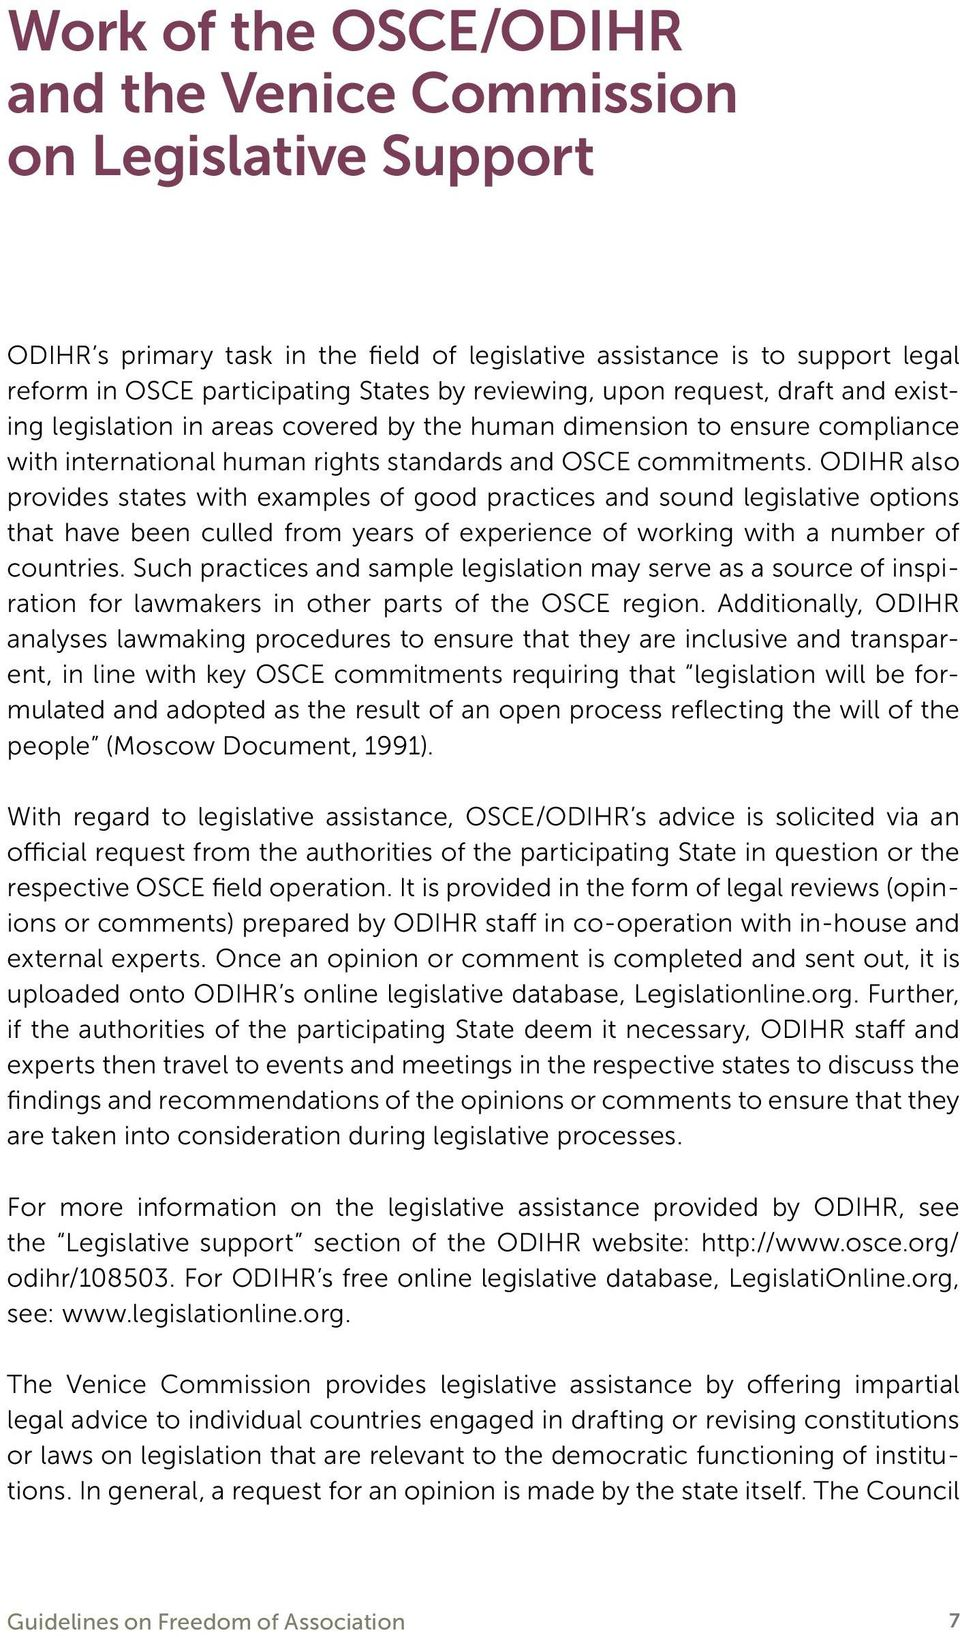 ODIHR also provides states with examples of good practices and sound legislative options that have been culled from years of experience of working with a number of countries.